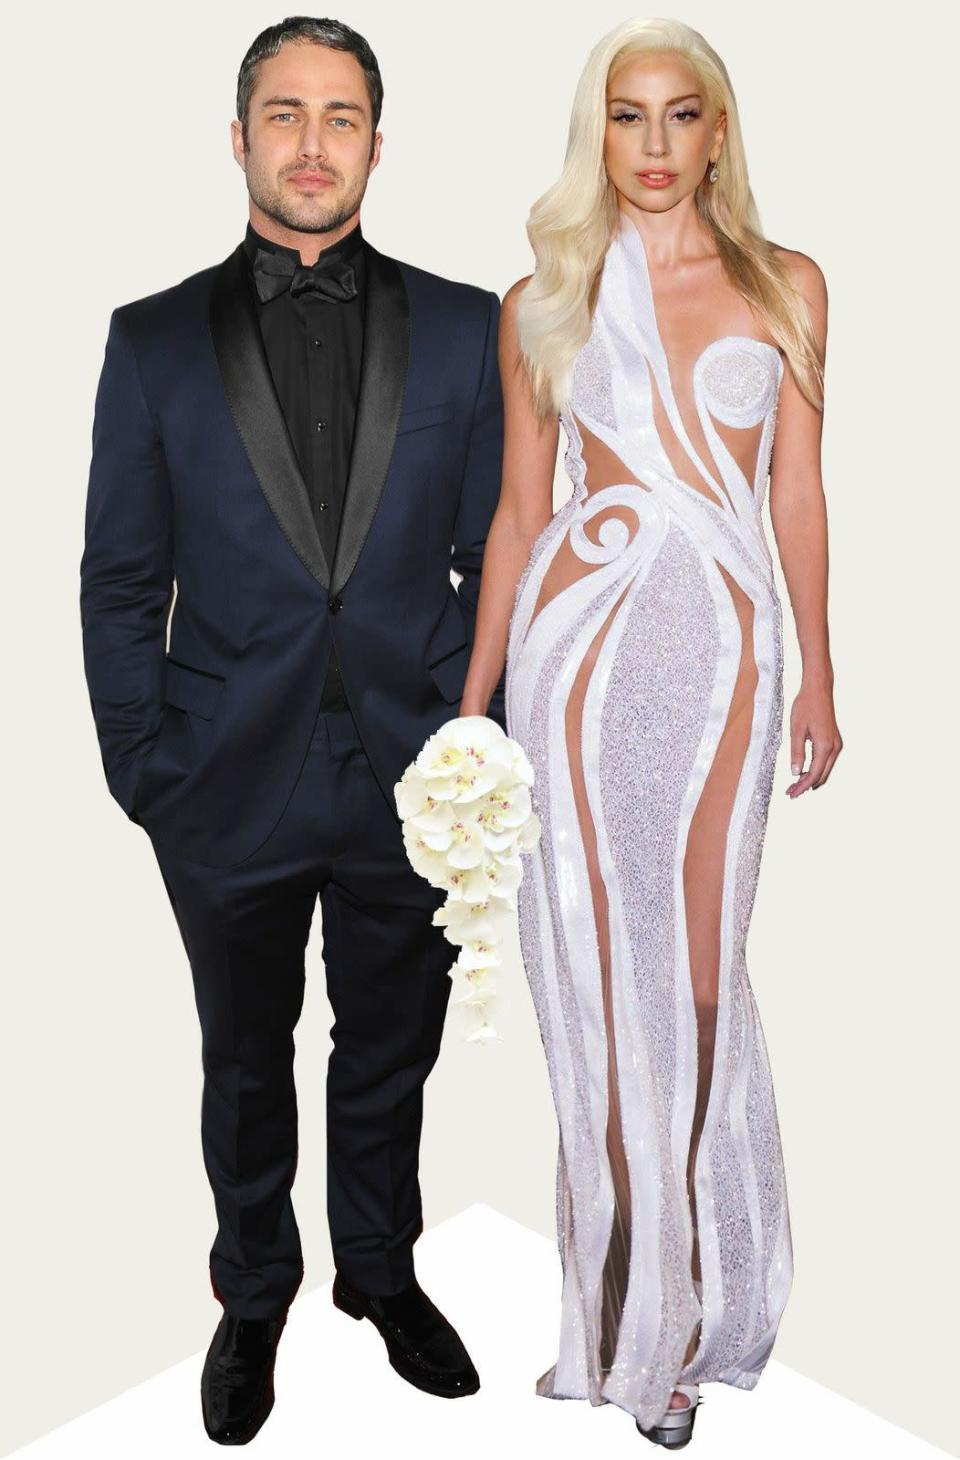 Never one to cover up, this Versace dress is strategic in its fabric placement, making it appropriate for a wedding day and fitting with Gaga's unique sense of style.